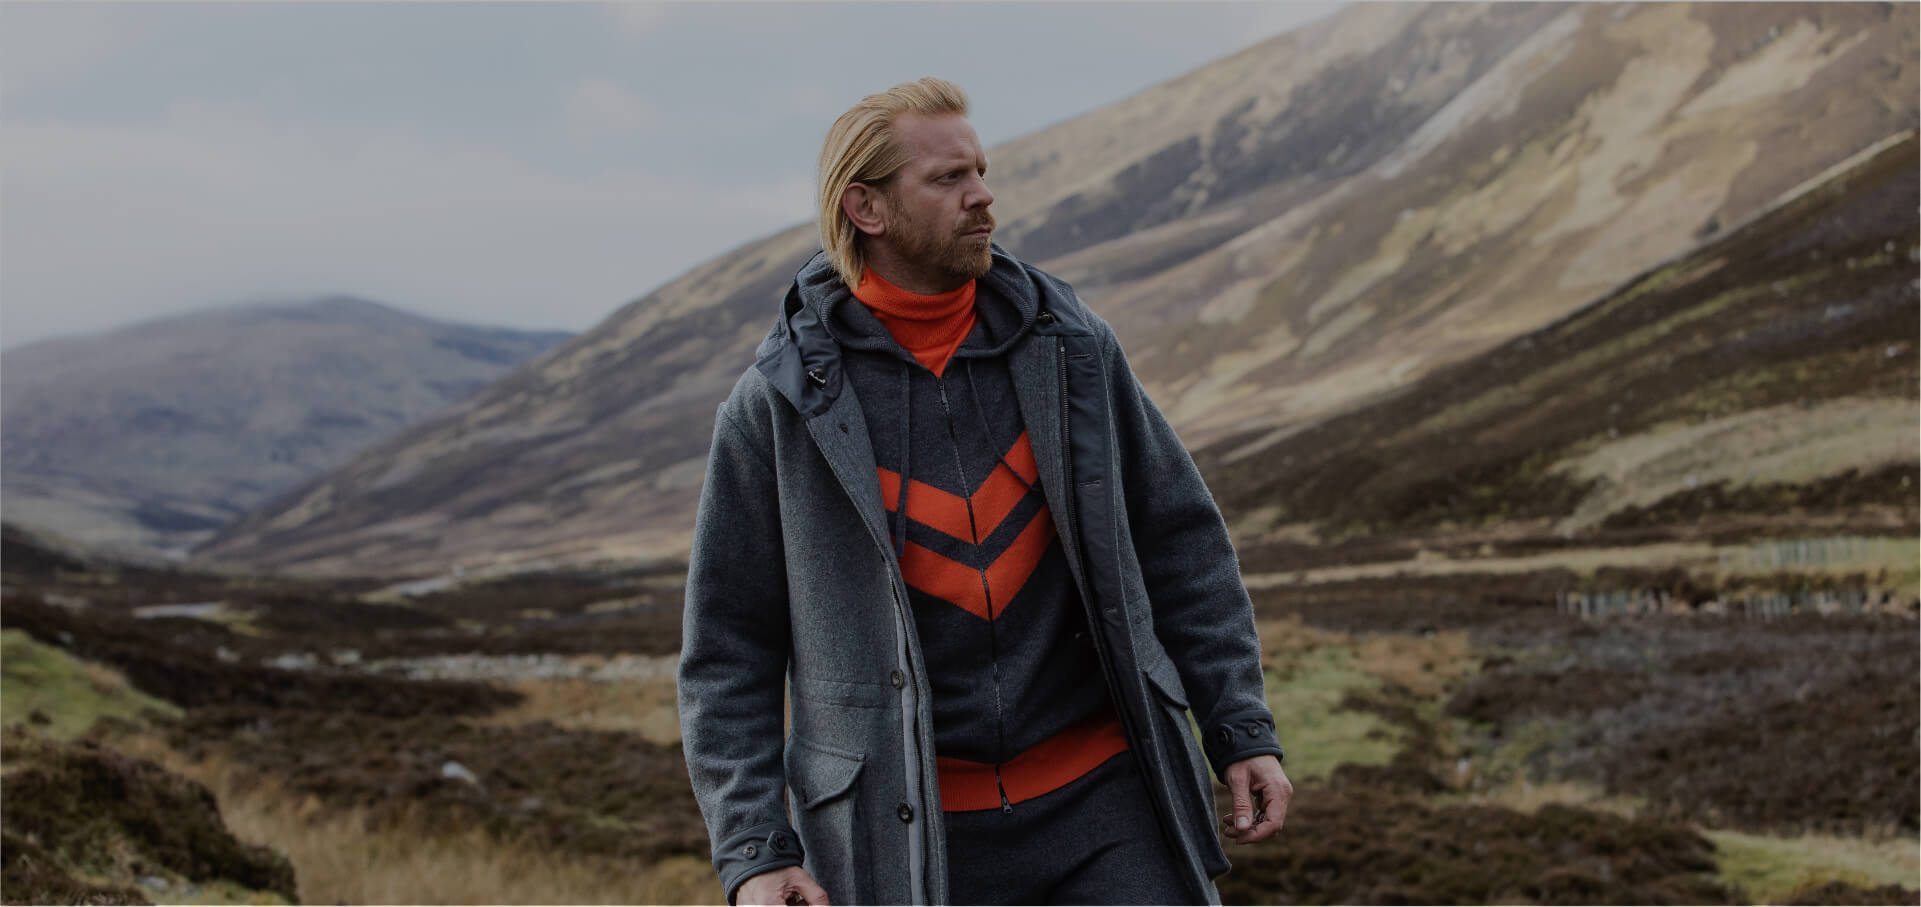 Alistair Guy on location for the Johnstons of Elgin AW19 photoshoot